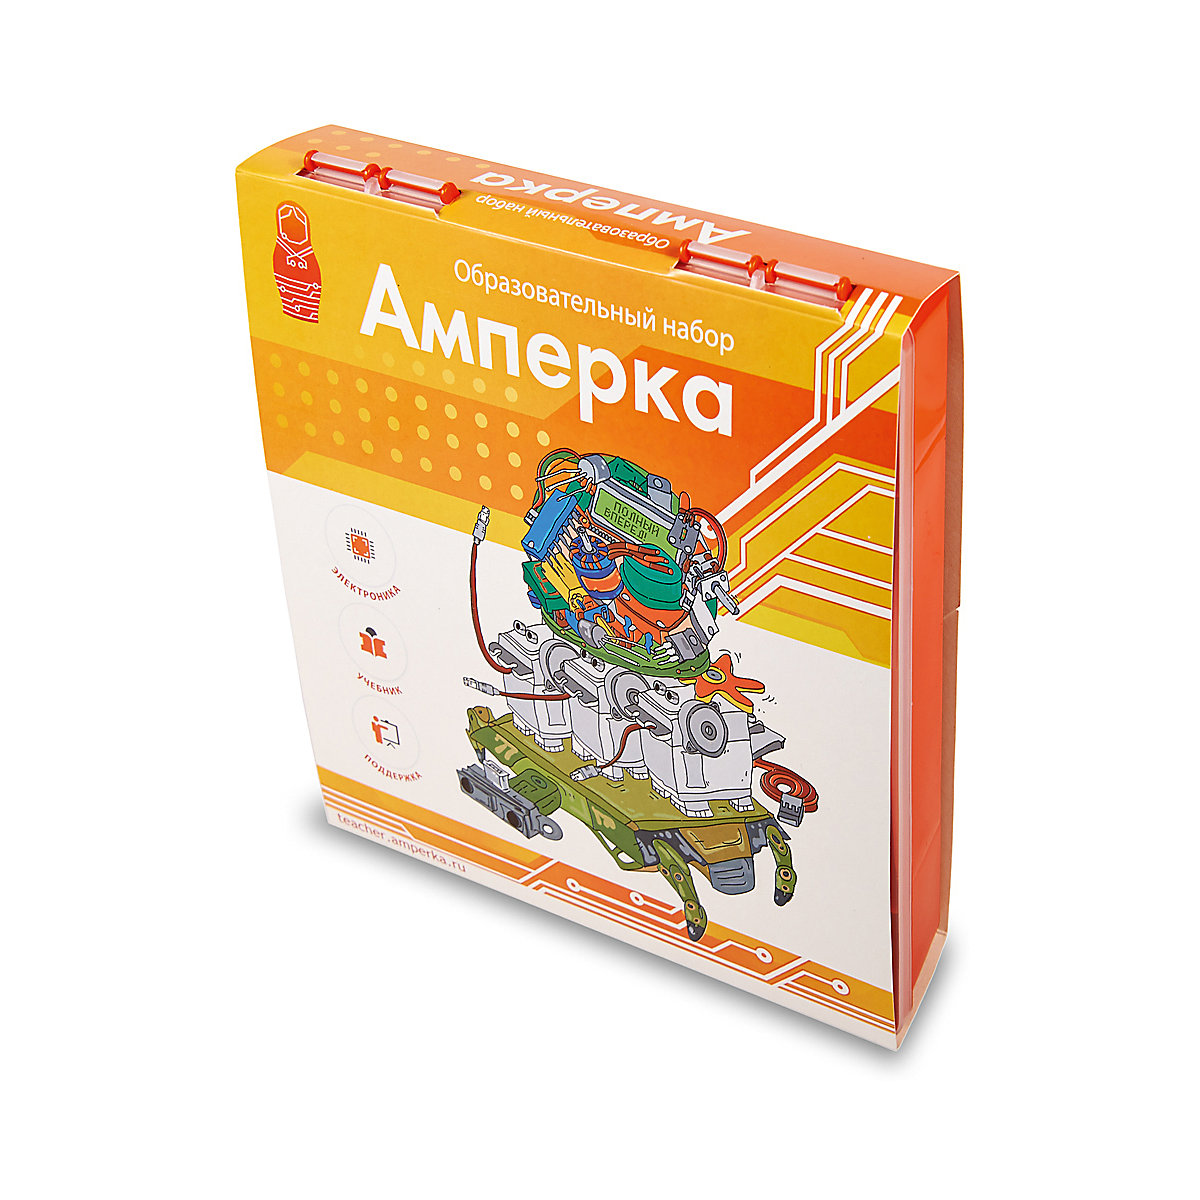 AMPERKA Blocks 5427690 toys for boys girls building construction educational developing toy game play team modeling boy girl diy toys military army building blocks defensive wall action figures enlighten toy for children city